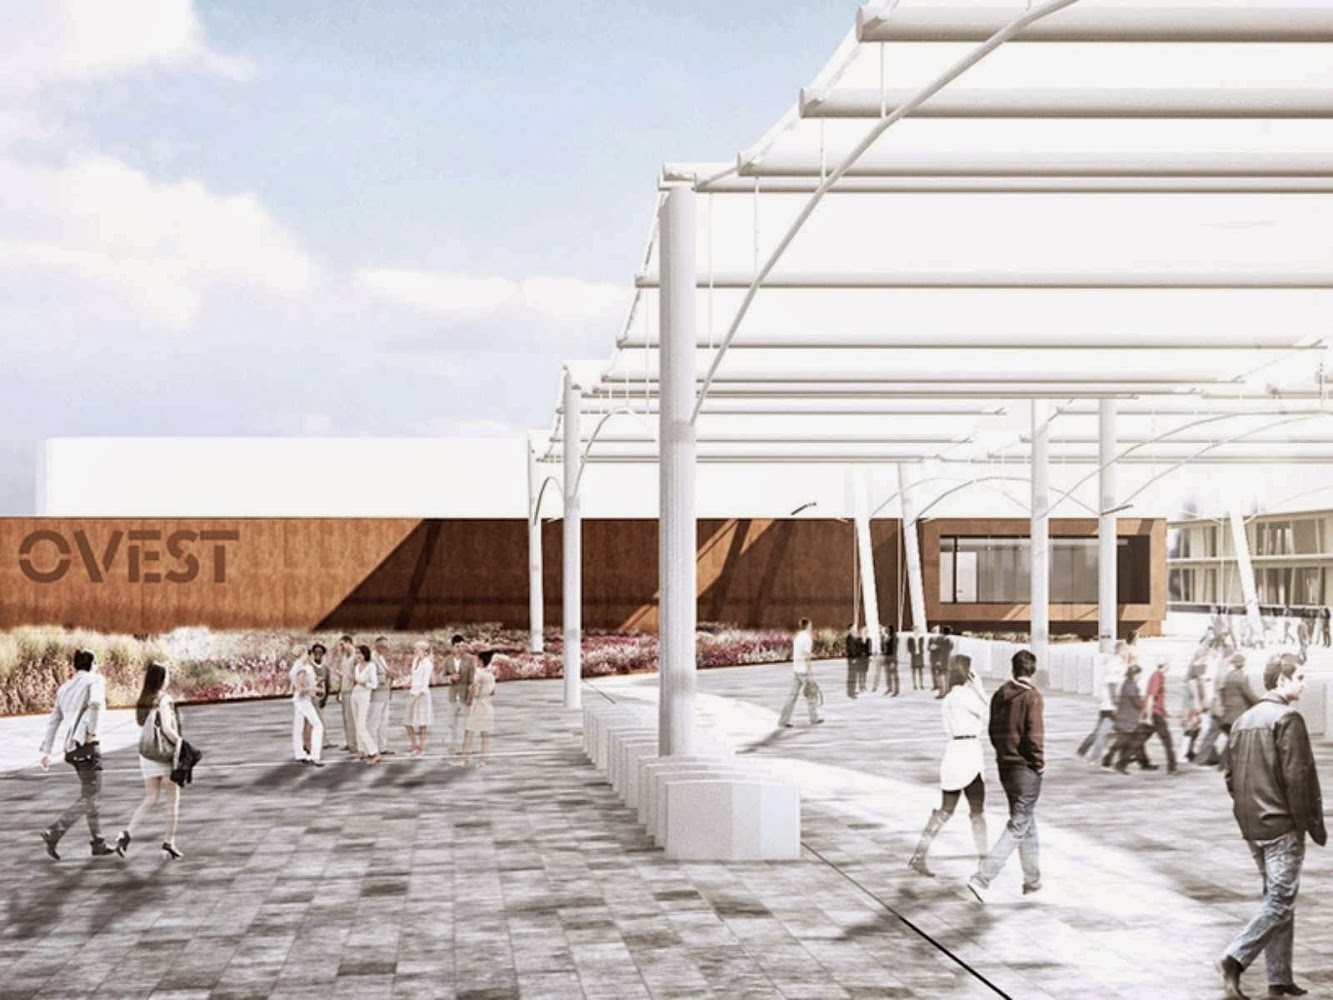 Expo 2015 Service Areas by Onsitestudio